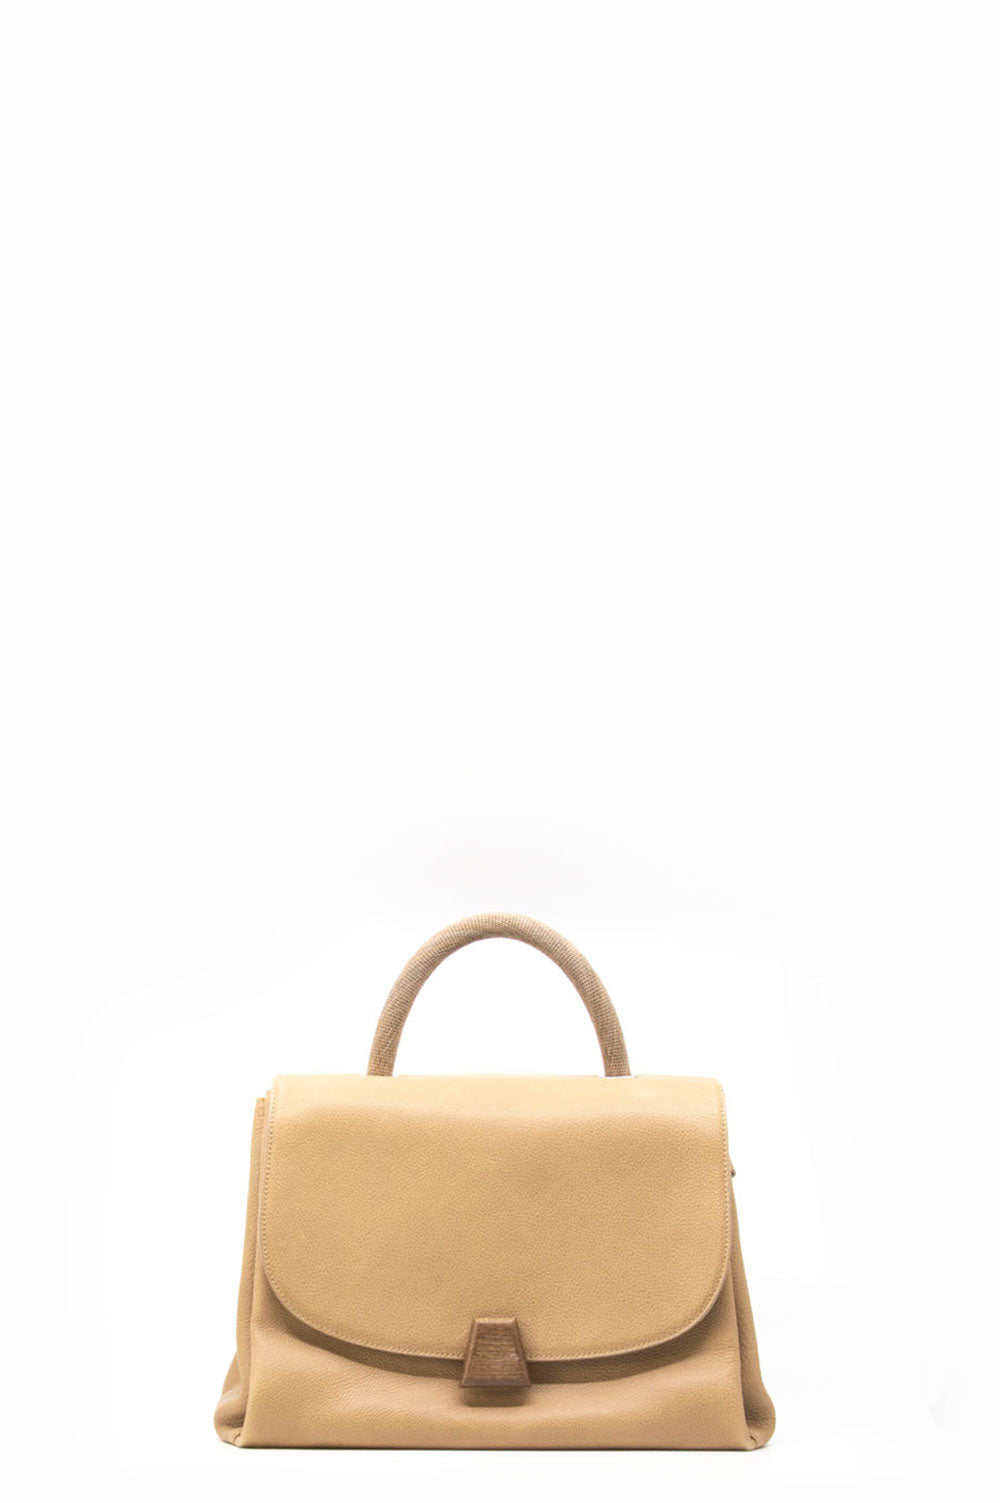 Akris Handbag in beige.